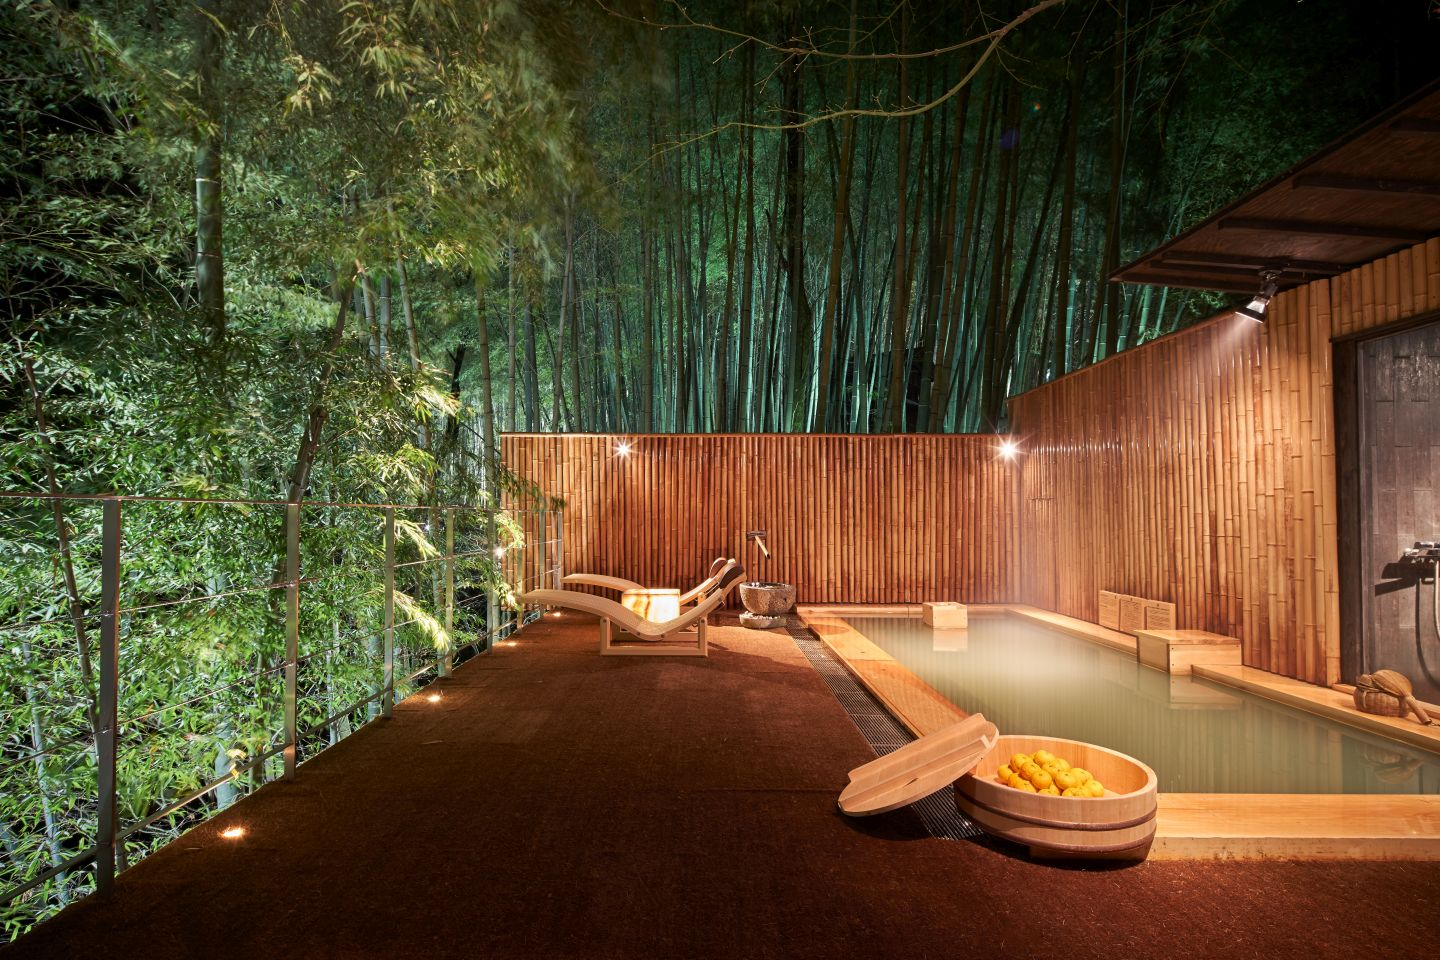 Japan's southernmost main island of Kyūshū is the perfect place to sample the traditional ryokan experience, marrying hot springs and exquisite Japanese hospitality.